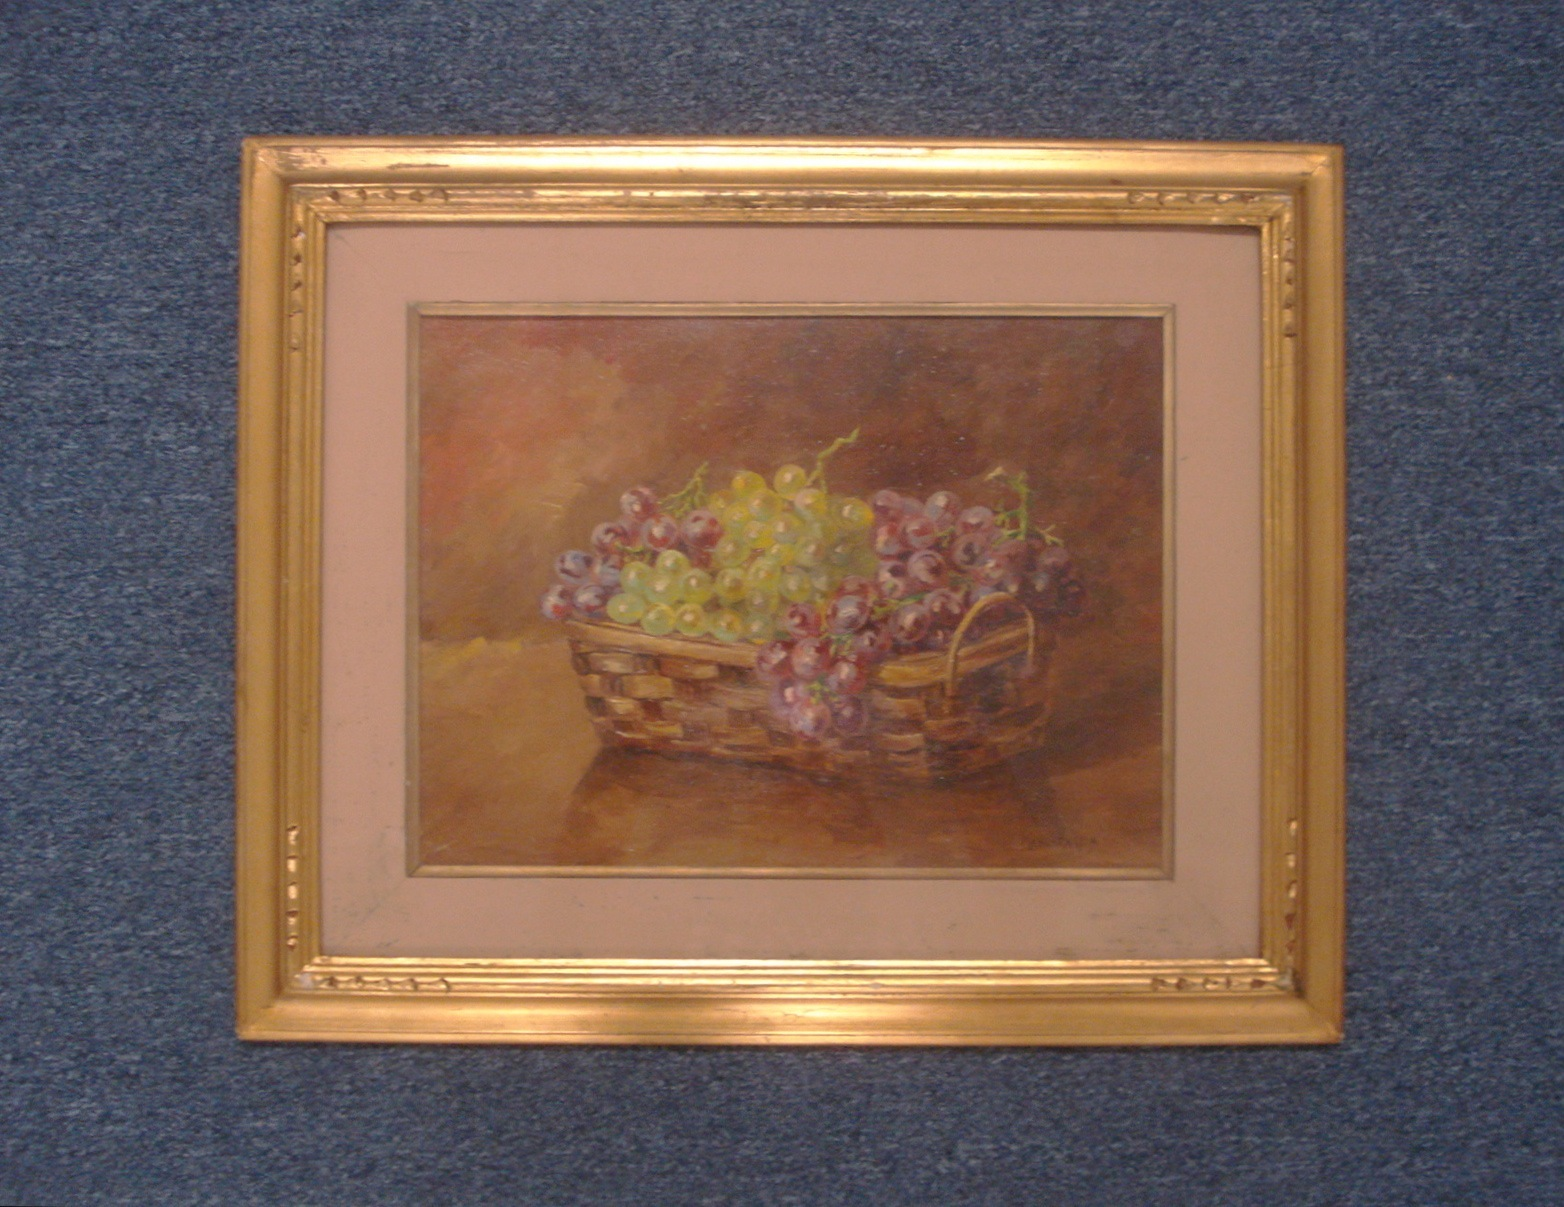 Mencaraglia Still Life Painting Oil on Wood Signed 01613